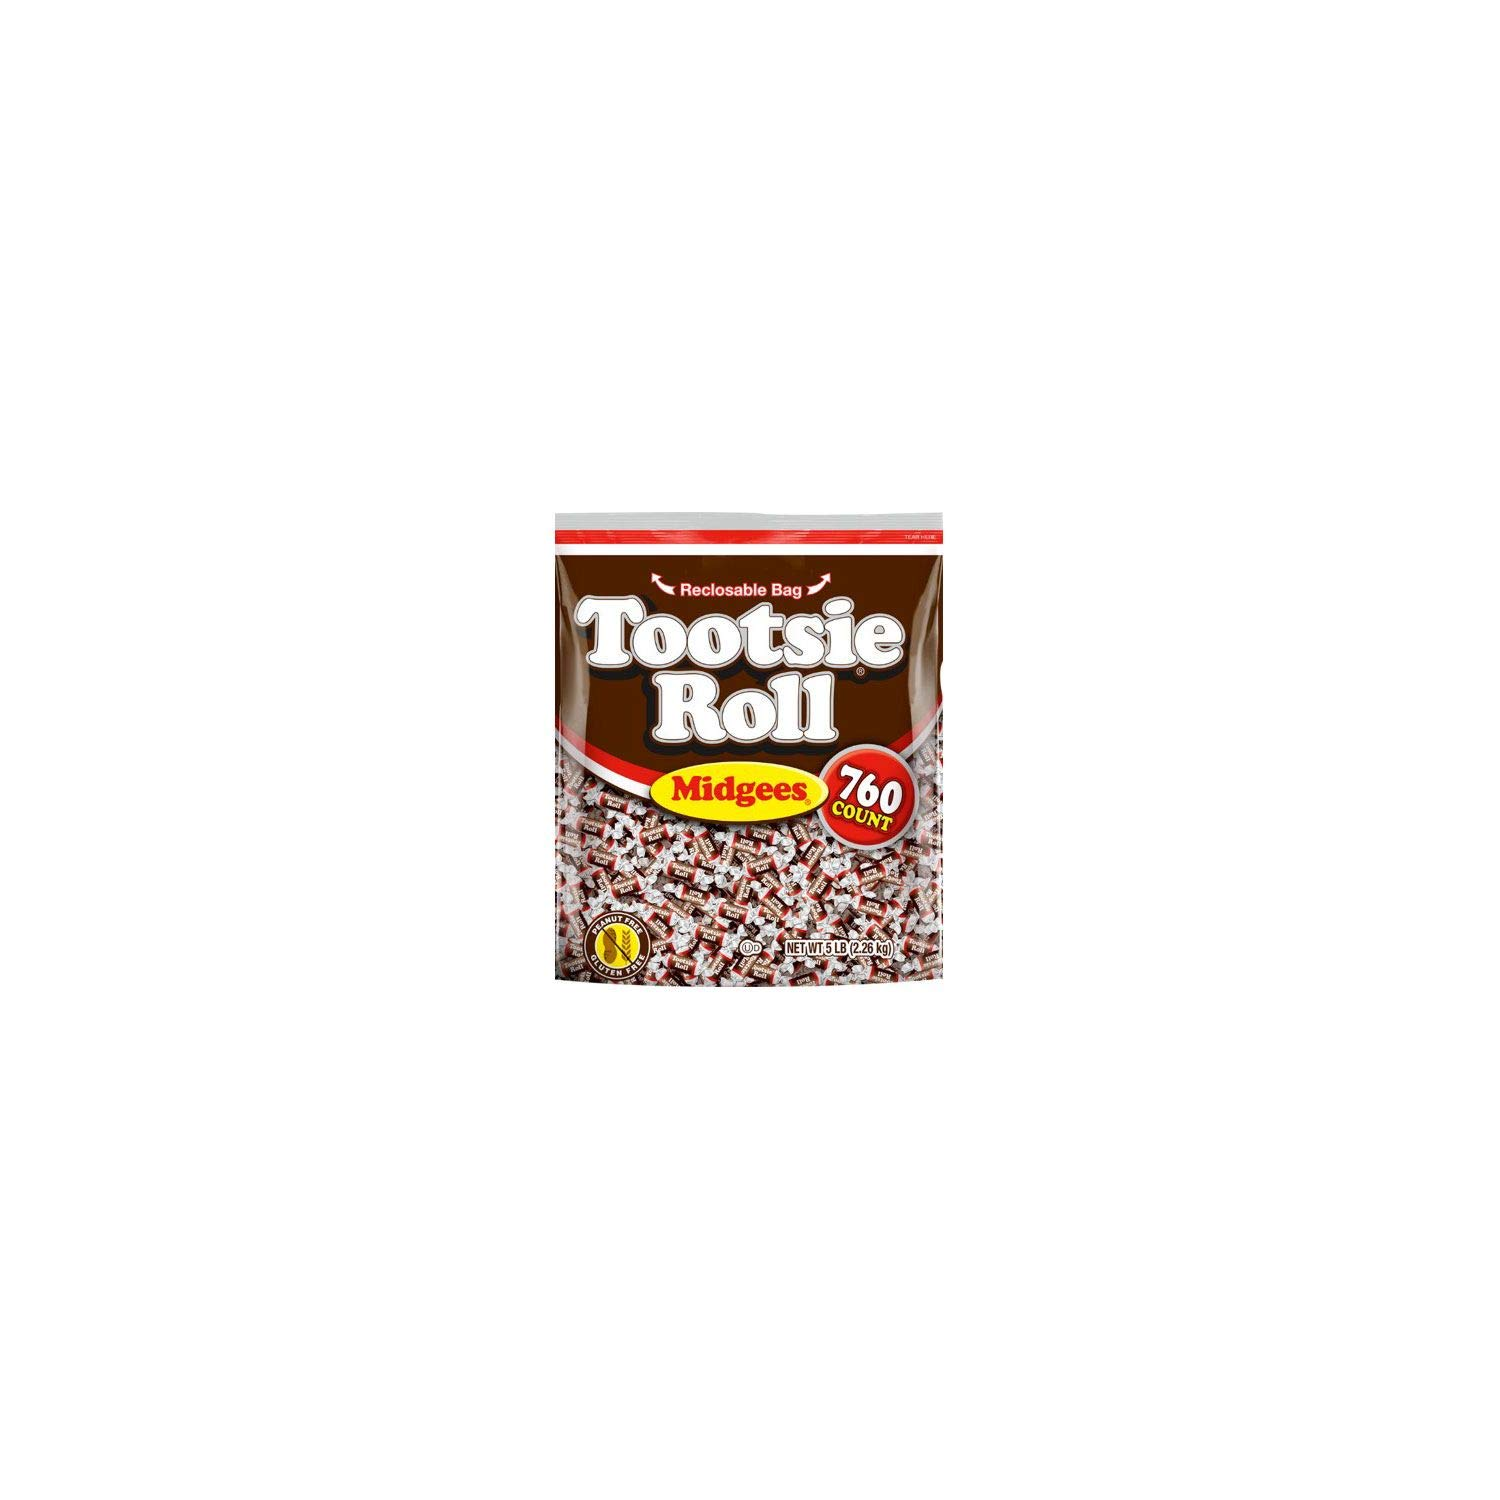 Tootsie Roll Midgees 80 oz, 760 ct. (pack of 3) A1